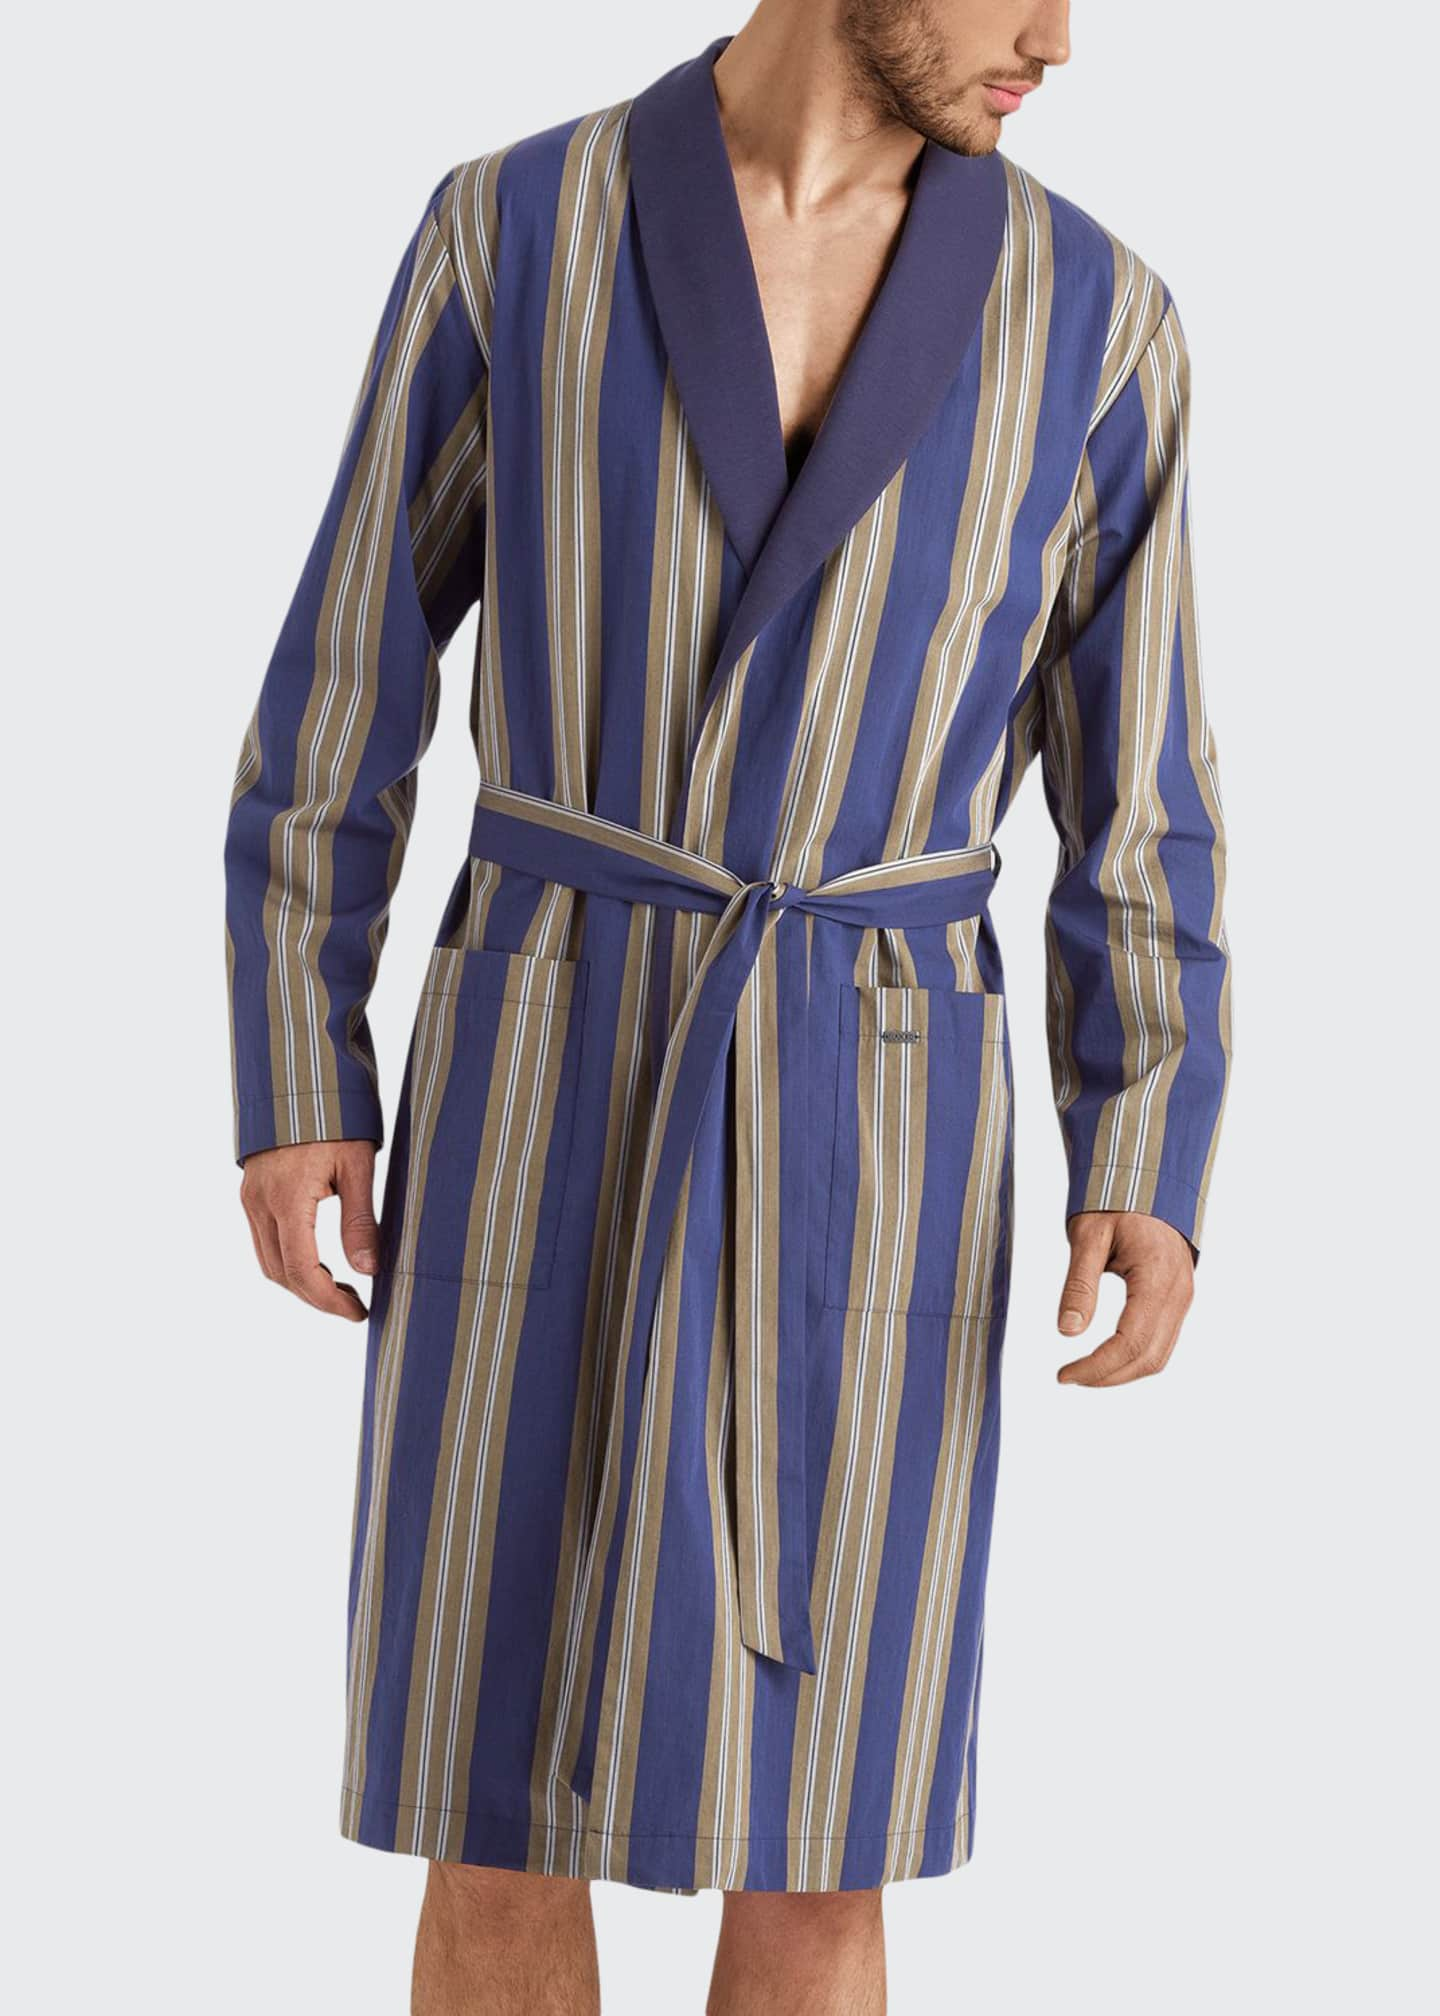 Hanro Men's Night & Day Striped Cotton Robe